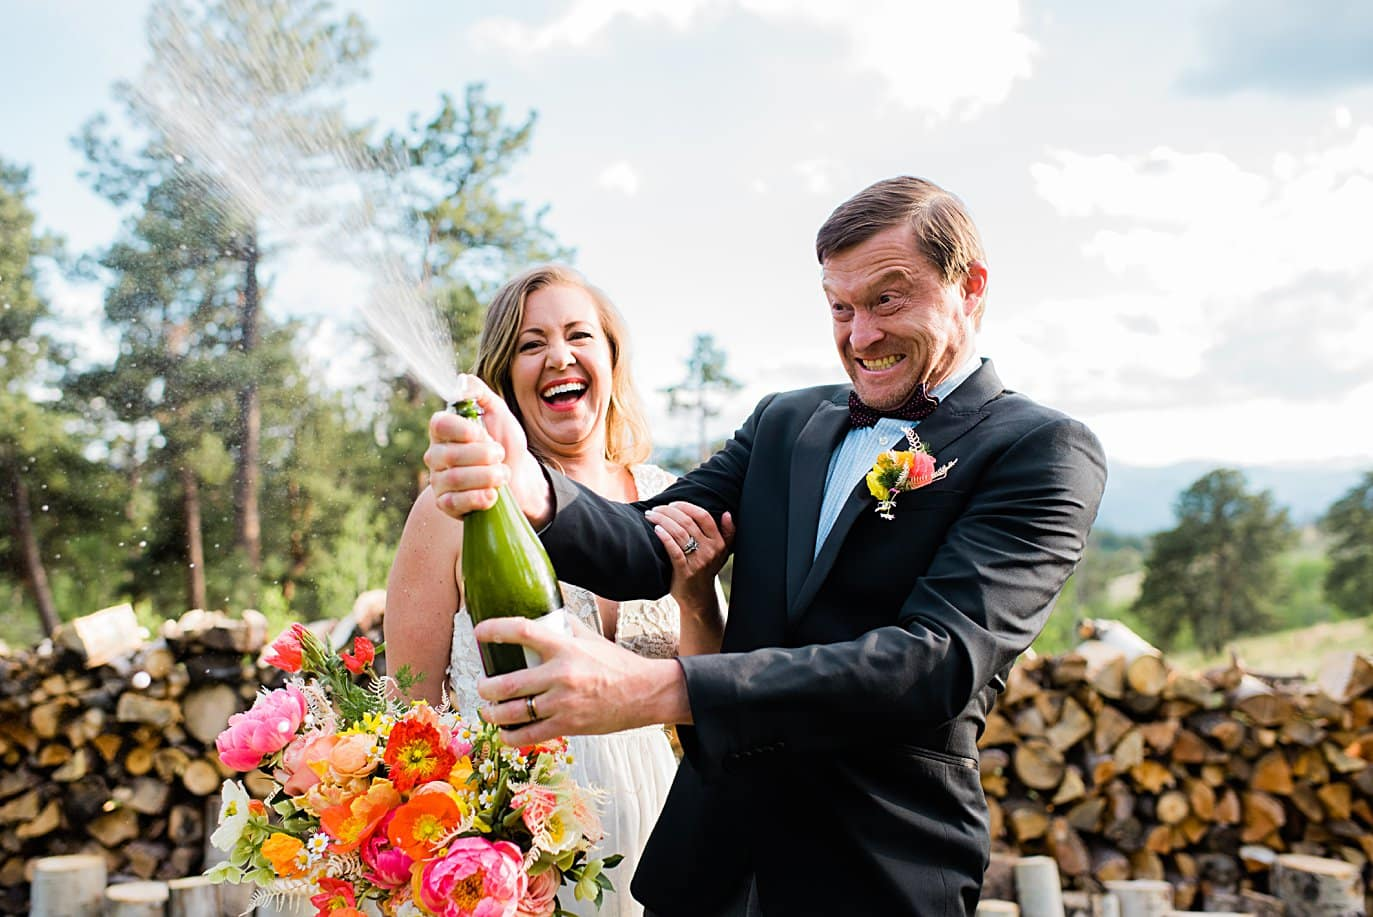 bride and groom pop champagne after wedding ceremony at private Golden elopement by Boulder elopement photographer Jennie Crate